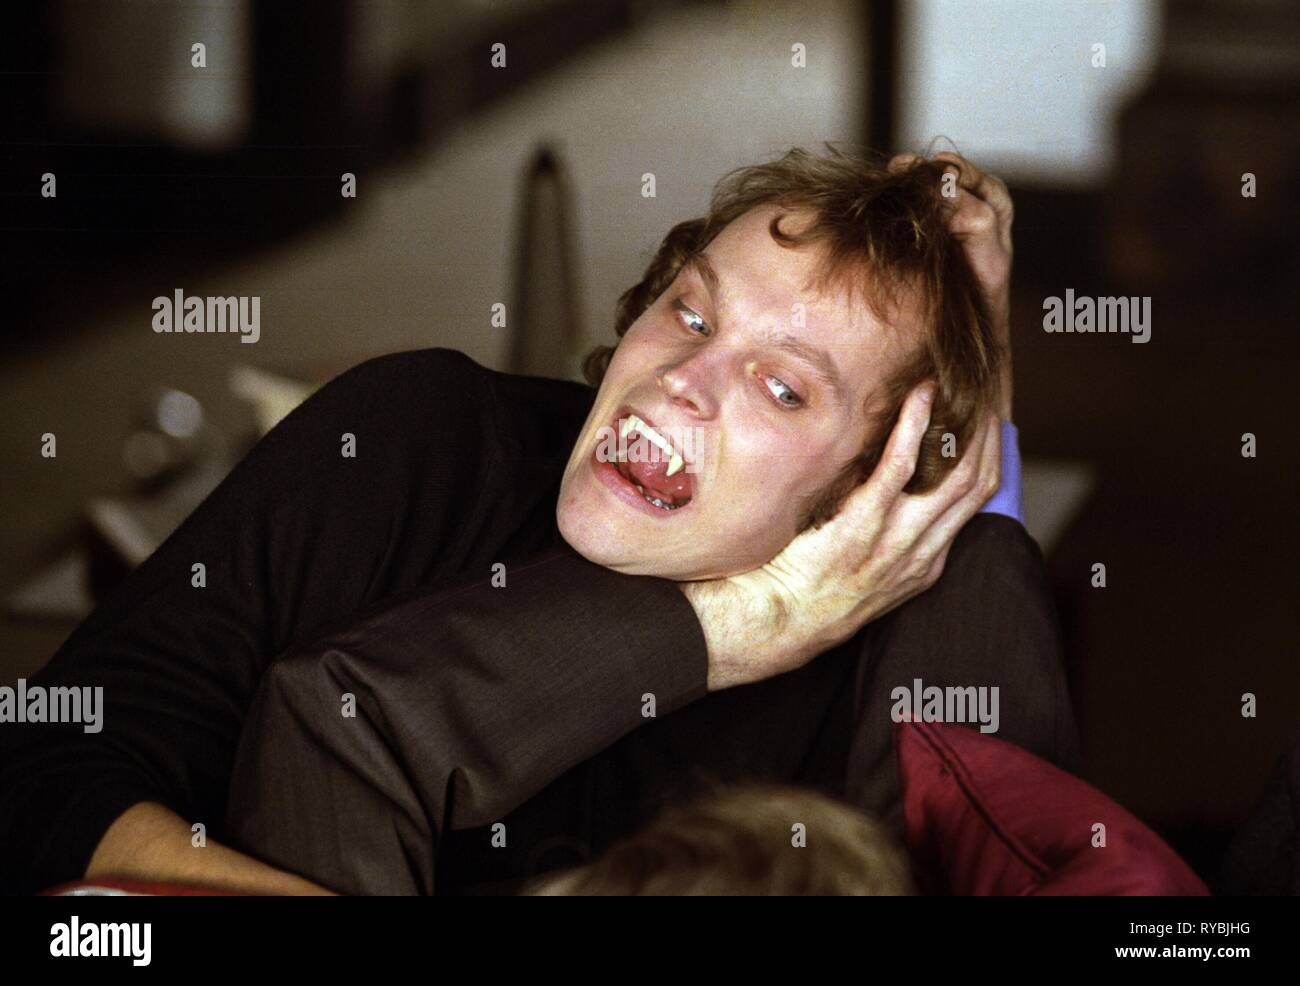 CHRISTOPHER NEAME, DRACULA A.D. 1972, 1972 - Stock Image